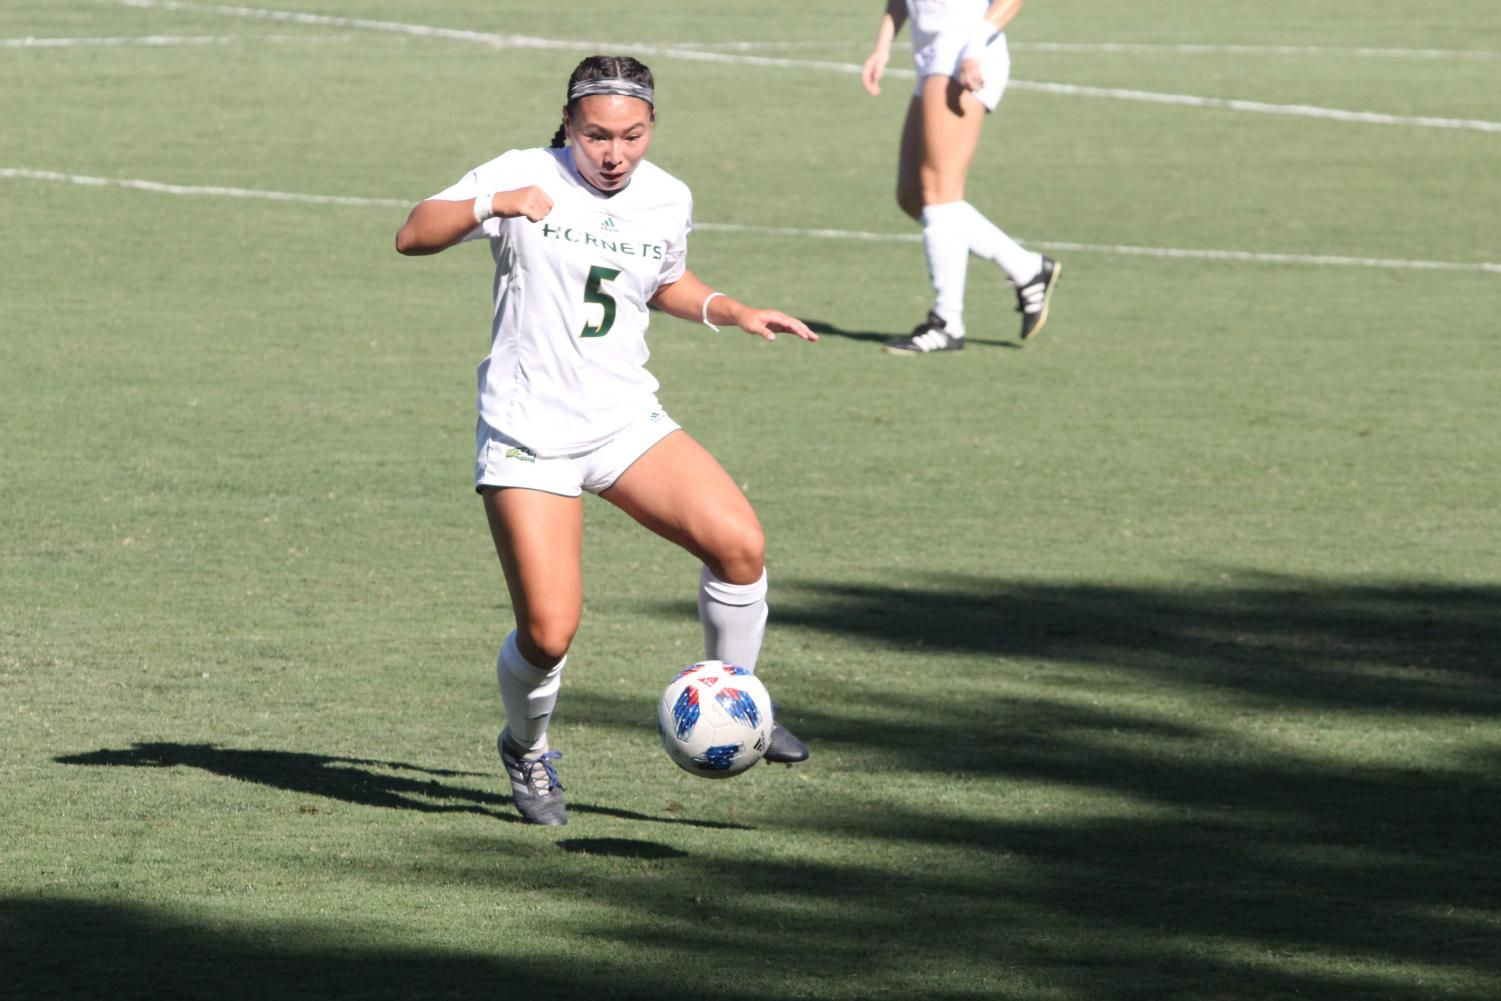 Sacramento State Hornets forward Kylee Kim-Bustillos looks to get possession of the ball. The Hornets was able to win their first match against Nevada 3-2 on Sept. 7 at the Hornet Field.